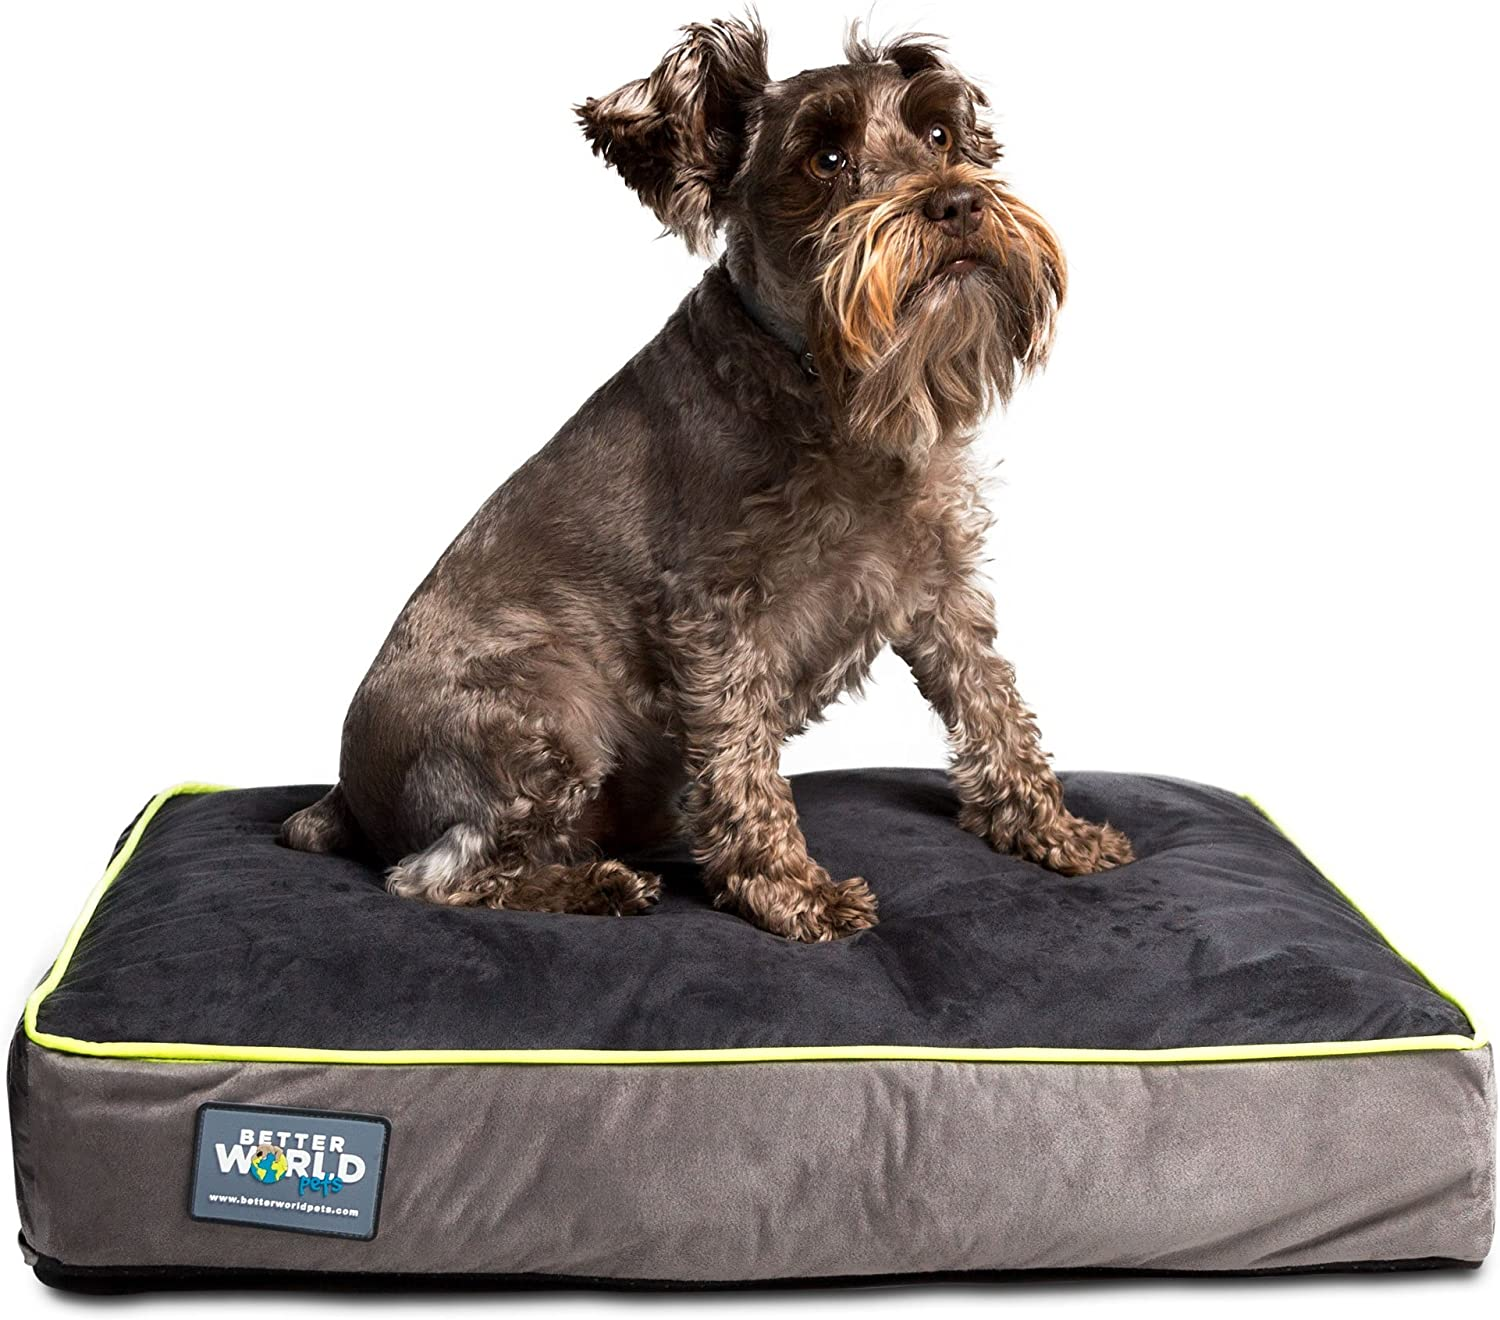 FirstQuality 5  Thick Orthopedic Dog Bed   Pure Premium Memory Foam   Ideal for Aging Dogs   Waterproof   Helps Ease Pain of Arthritis & Hip Dysplasia   180 GSM Removable Washable Cover